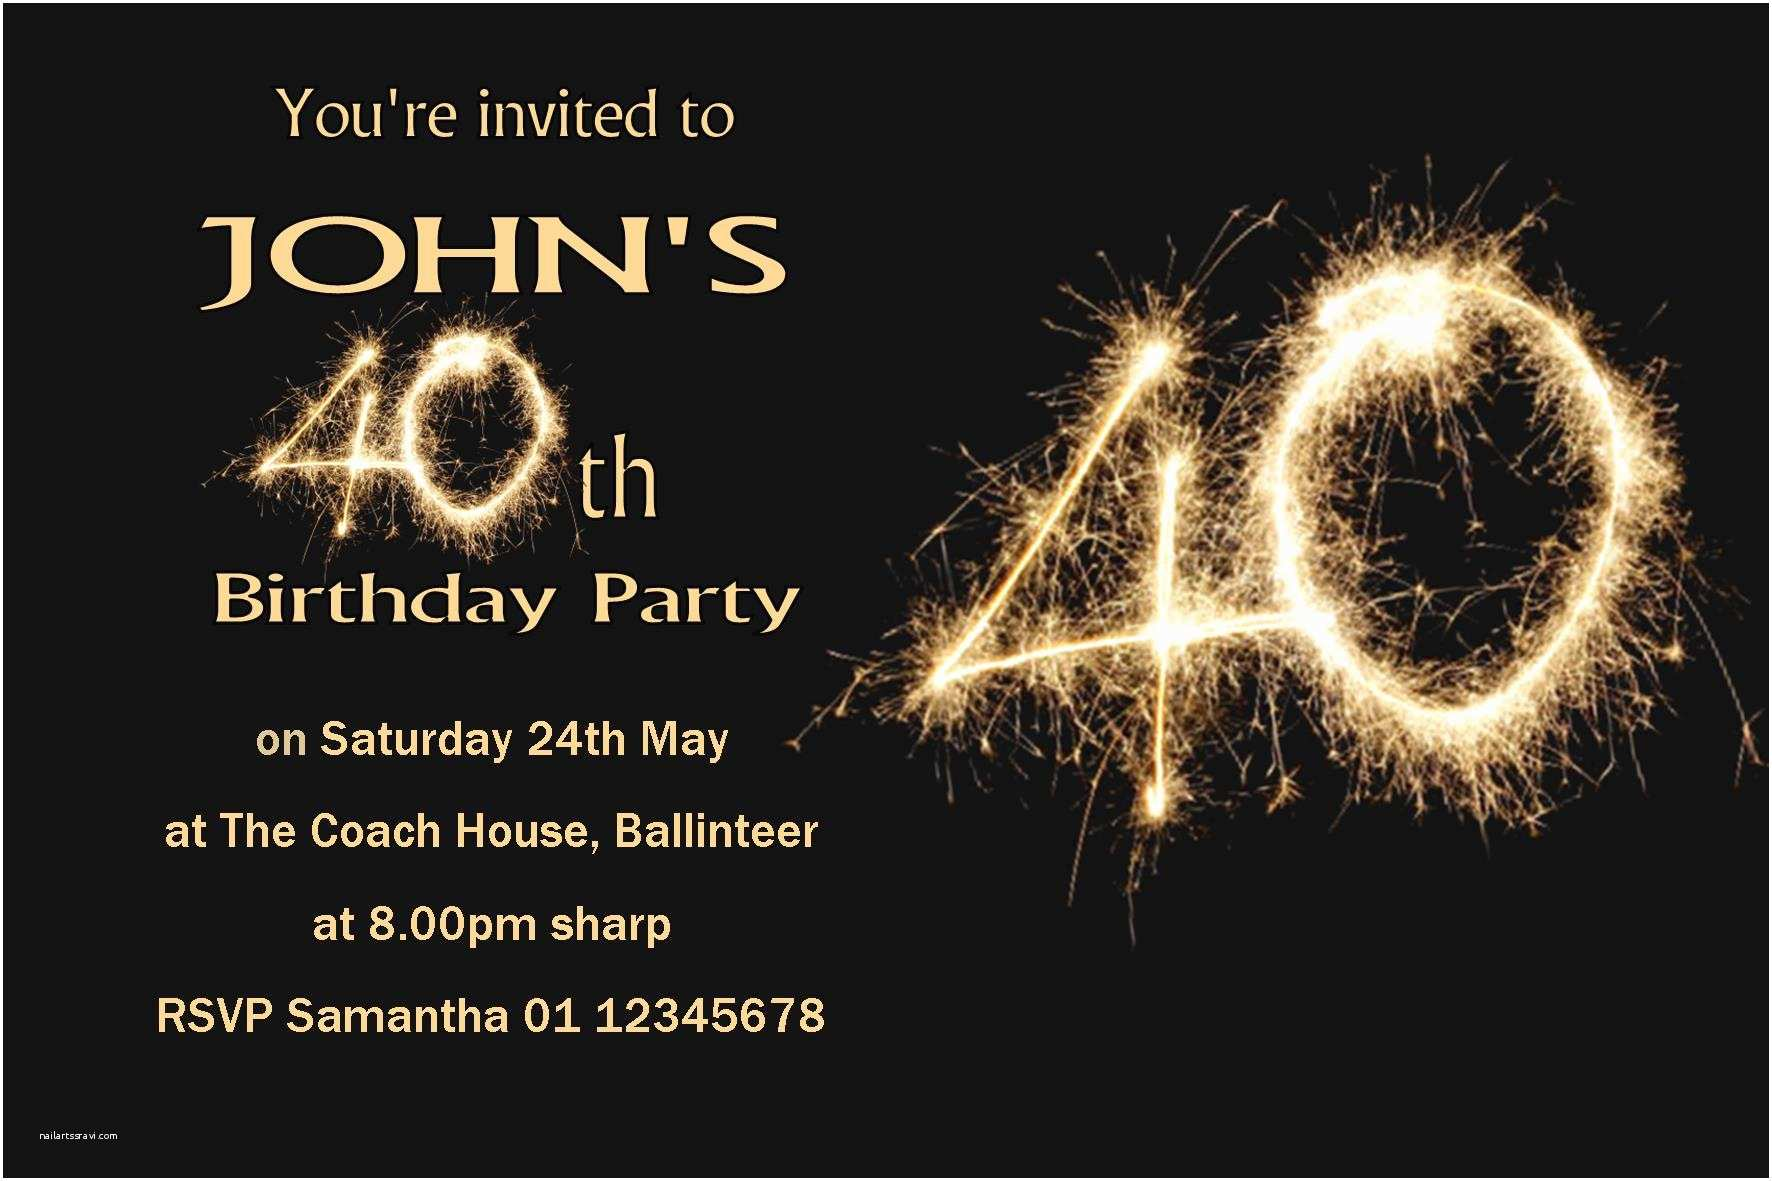 40th Birthday Invitations For Her Top 13 40th Birthday Party